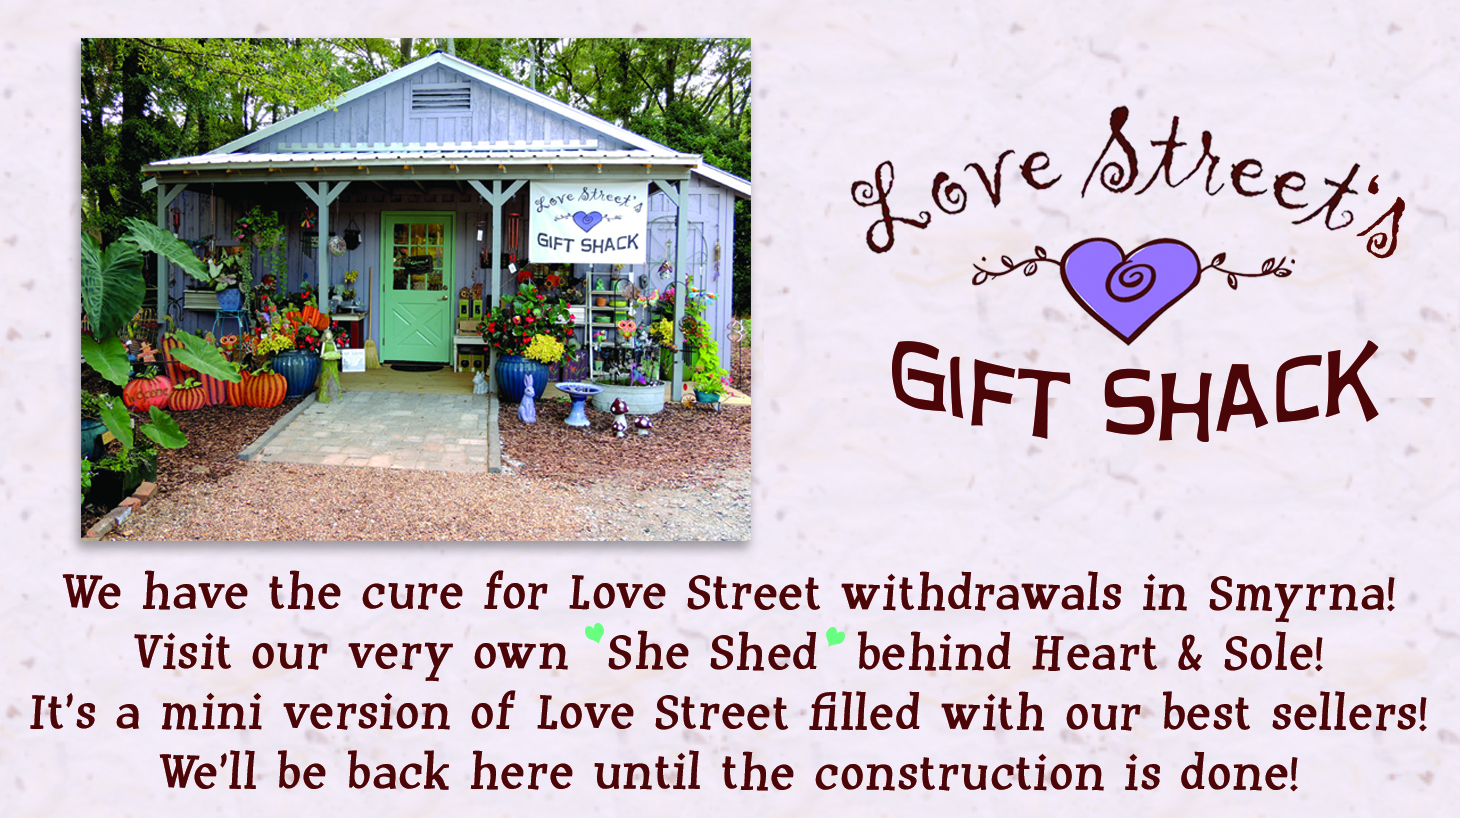 Love Street's Gift Shack, behind Heart & Sole